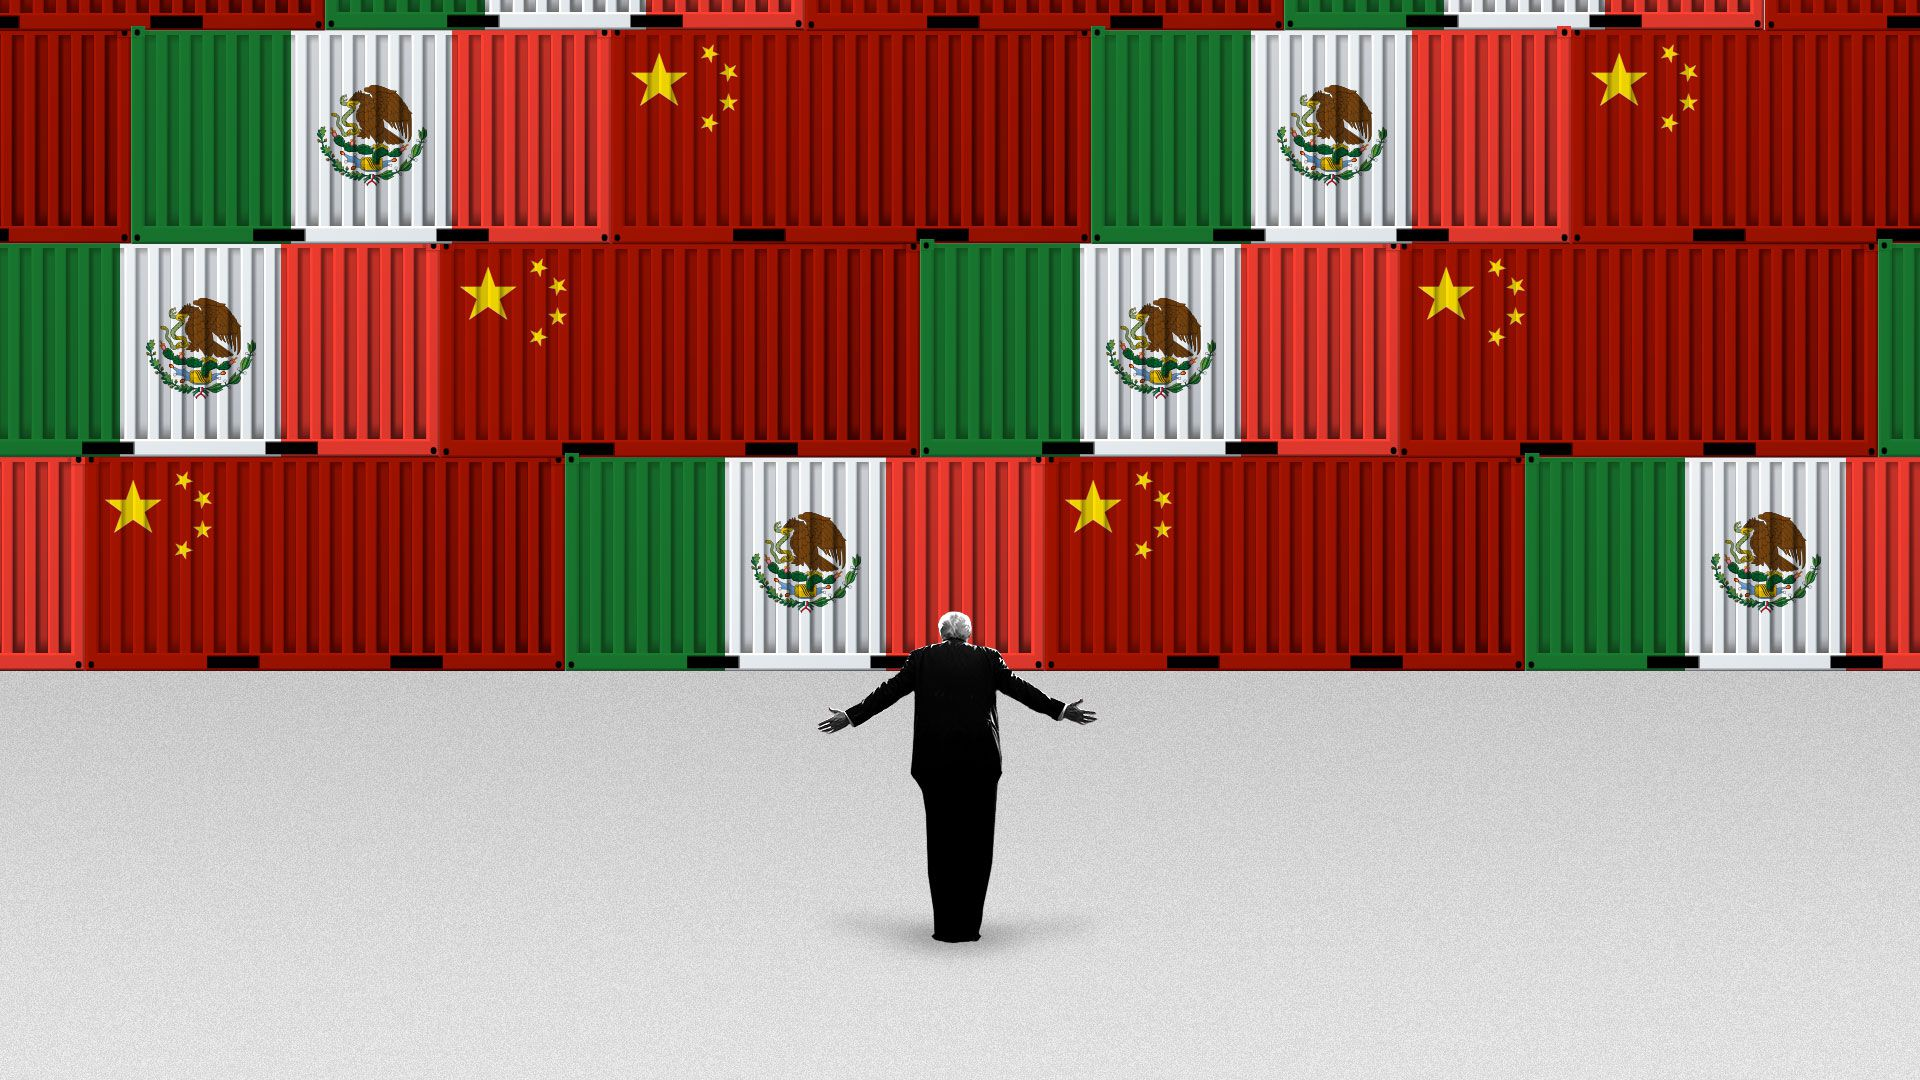 Illustration of President Trump standing in front of a wall of shipping containers with the flags of China and Mexico on them.